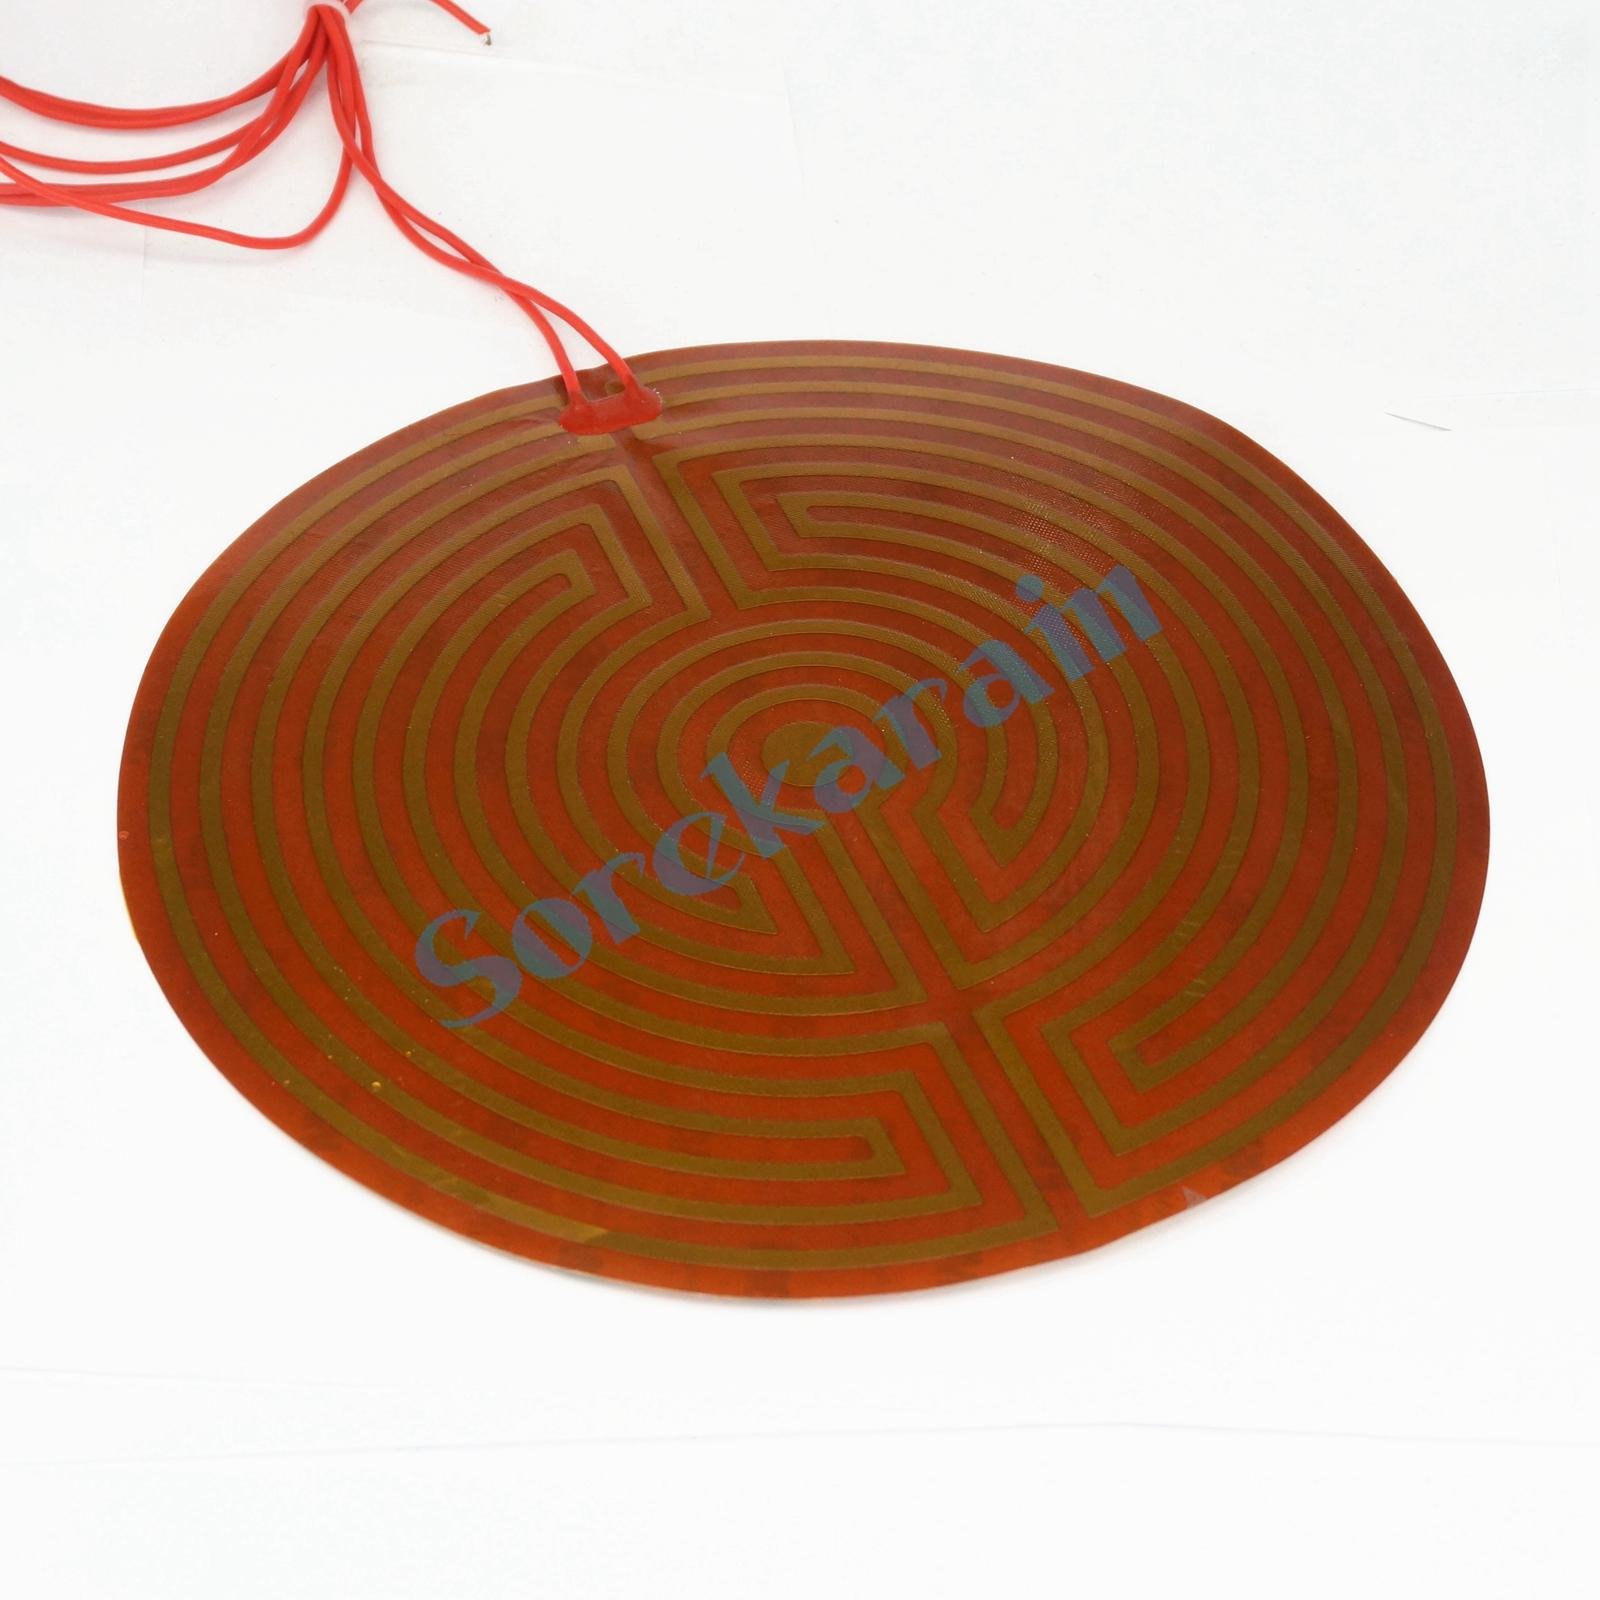 220mm 240W 24V DC Flexiable Round Eeletric Polyimide Film Heater Heating element for Electrical Wires 30x40mm 5v 1w element heating pi film polyimide heater heat rubber electric 3d priner beauty instrument industry heater element